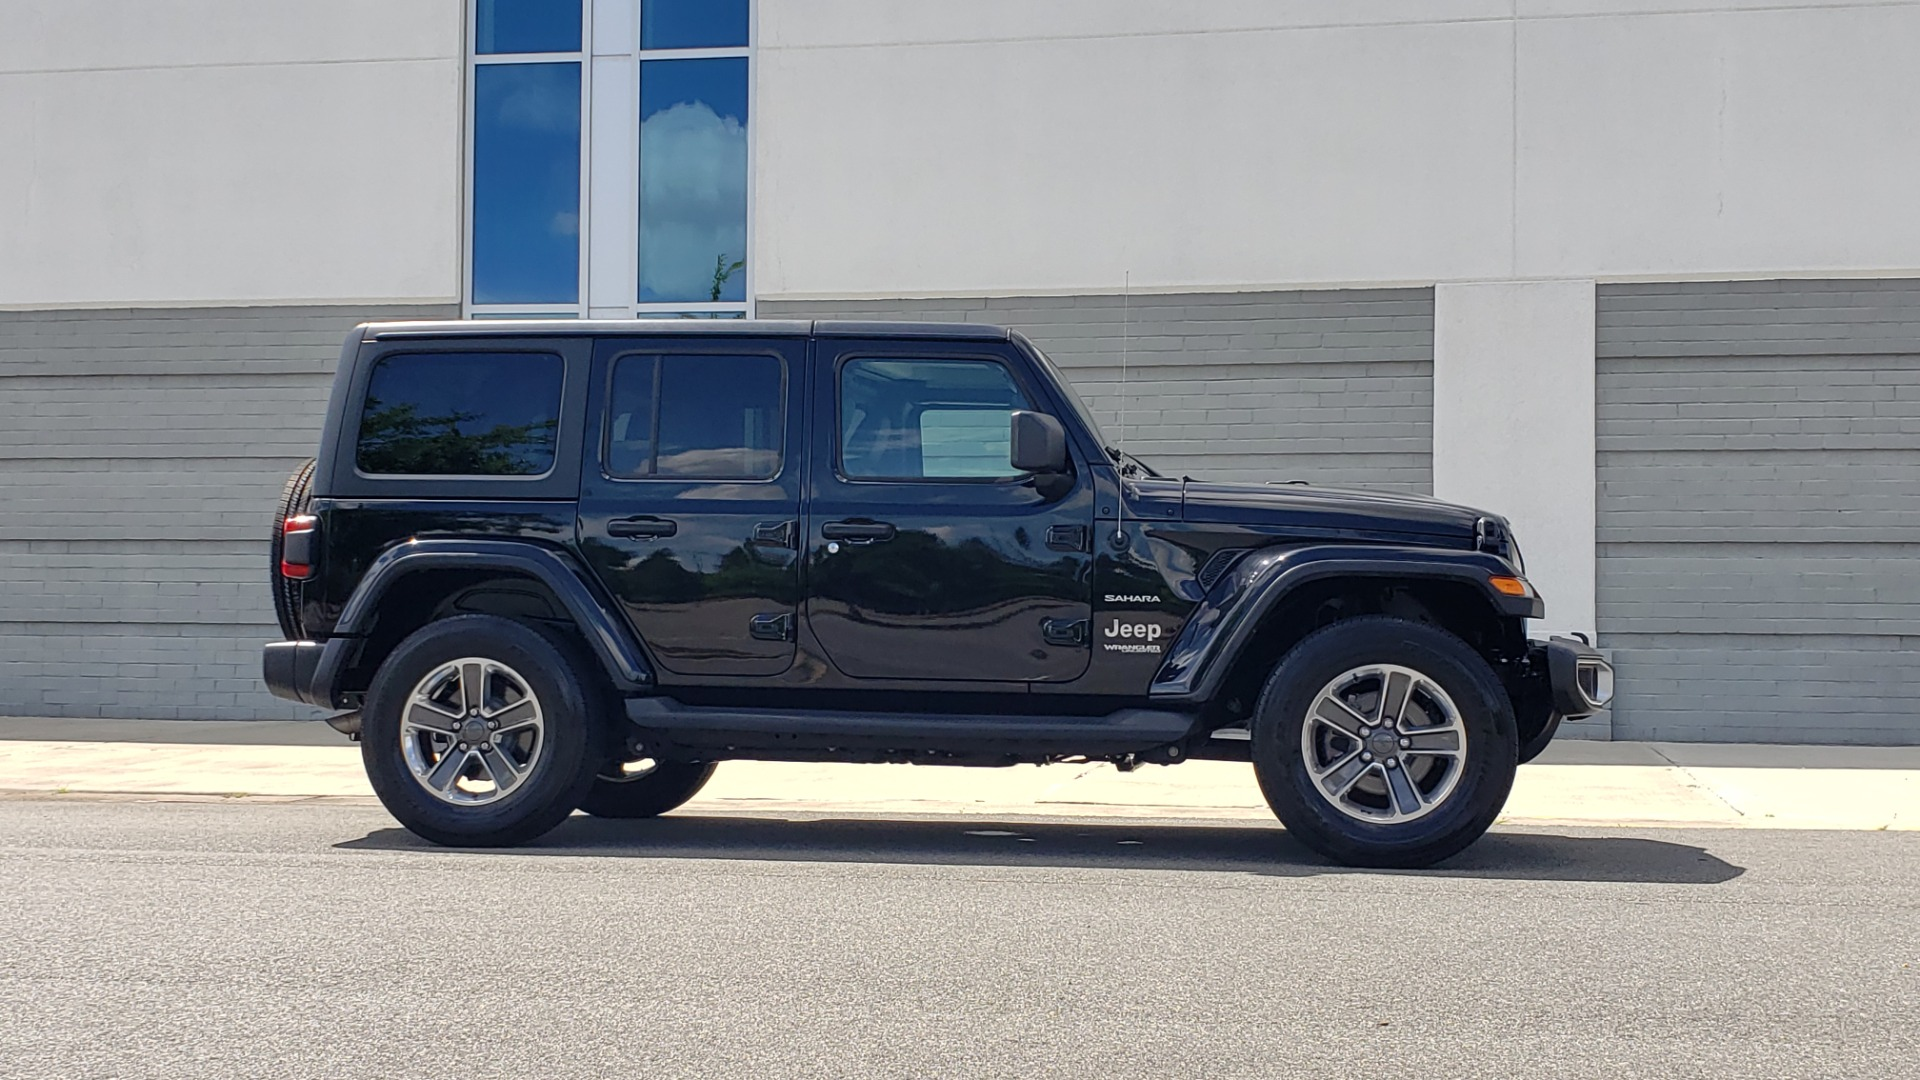 Used 2018 Jeep WRANGLER UNLIMITED SAHARA / 3.6L V6 / 6-SPD MAN / ALPINE / NAV / HTD STS / REARVIEW for sale $43,999 at Formula Imports in Charlotte NC 28227 9